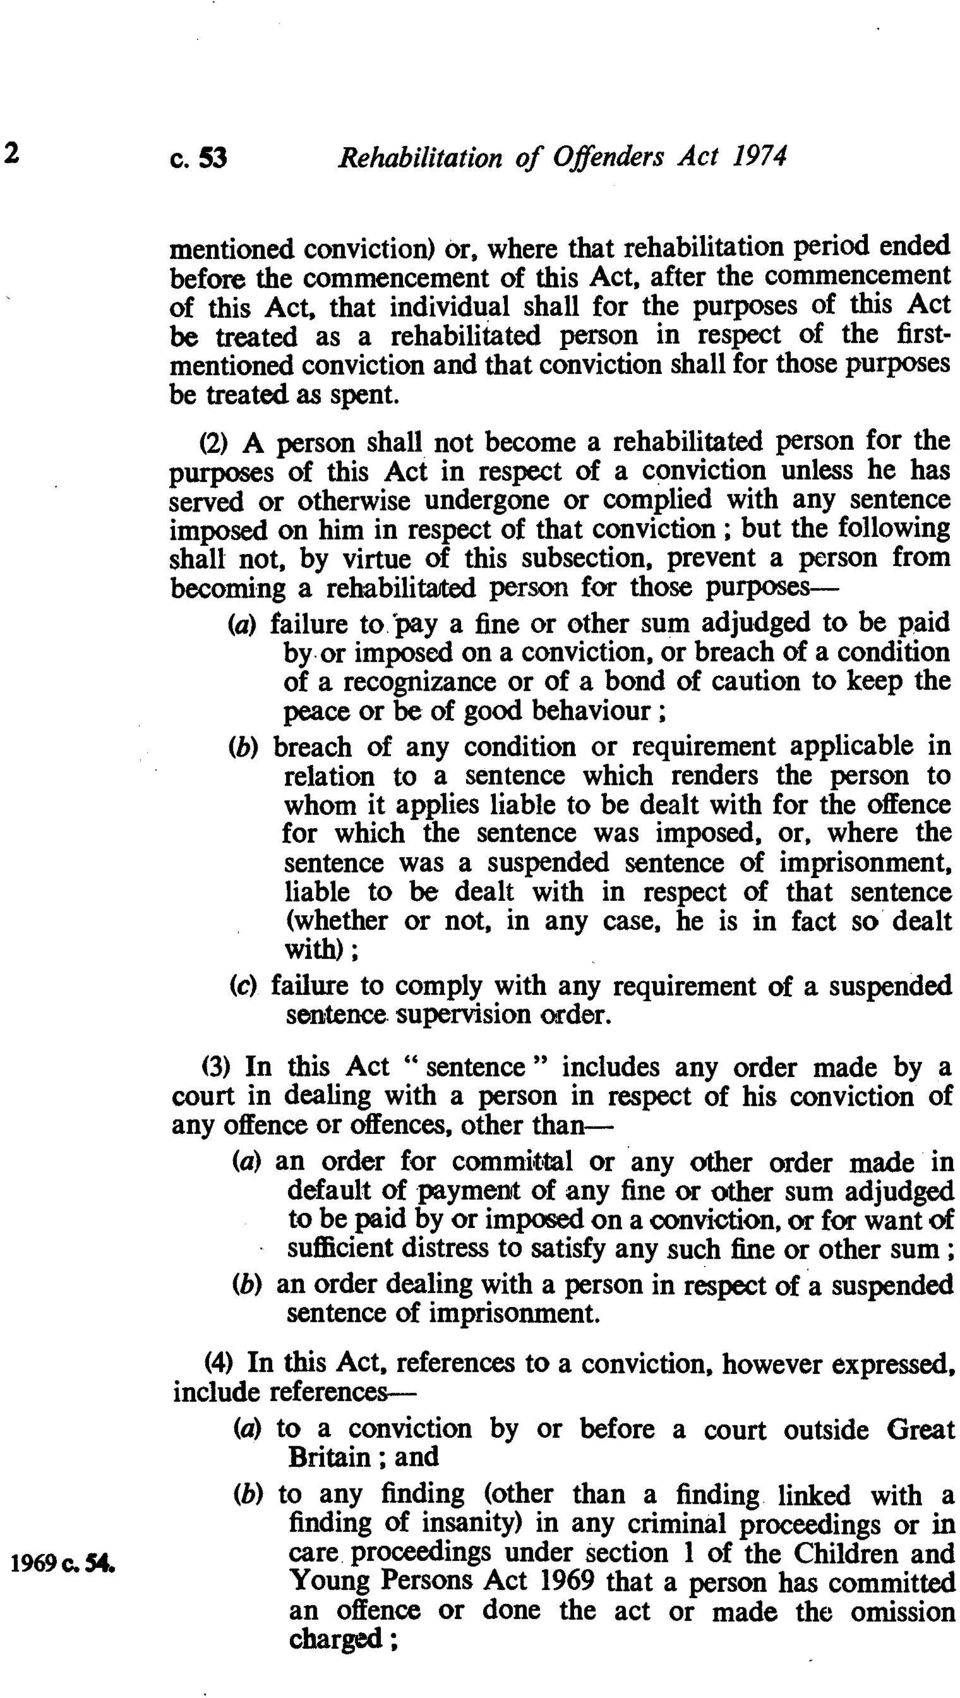 (2) A person shall not become a rehabilitated person for the purposes of this Act in respect of a conviction unless he has served or otherwise undergone or complied with any sentence imposed on him